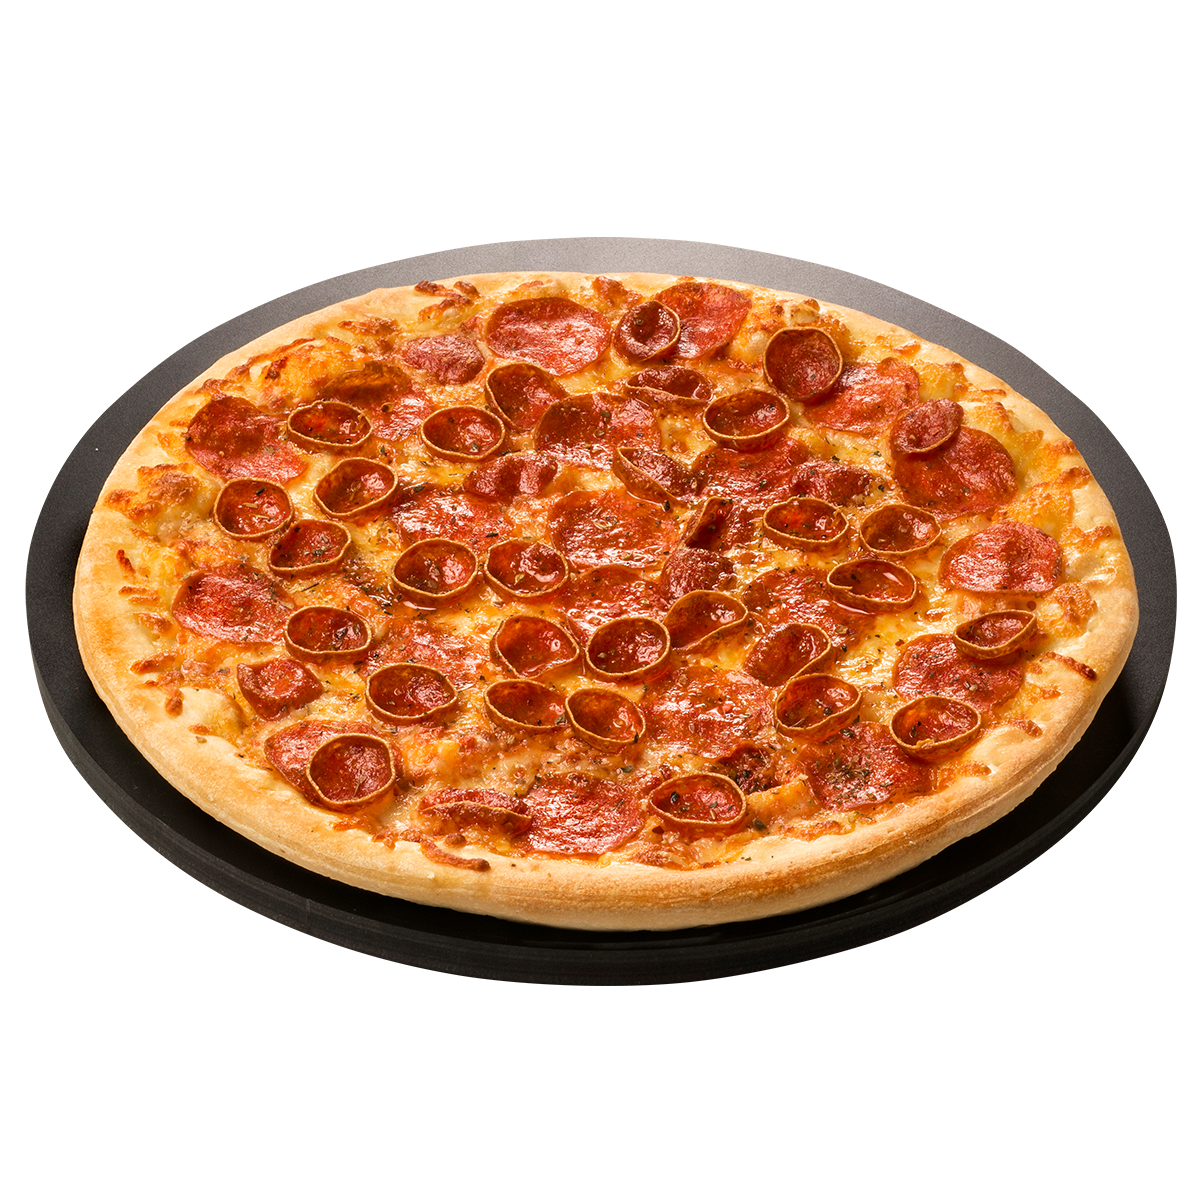 EXCLUSIVE ONLINE DEAL!!! Buy one Extra Large pizza and get one lowest priced Extra Large pizza free.